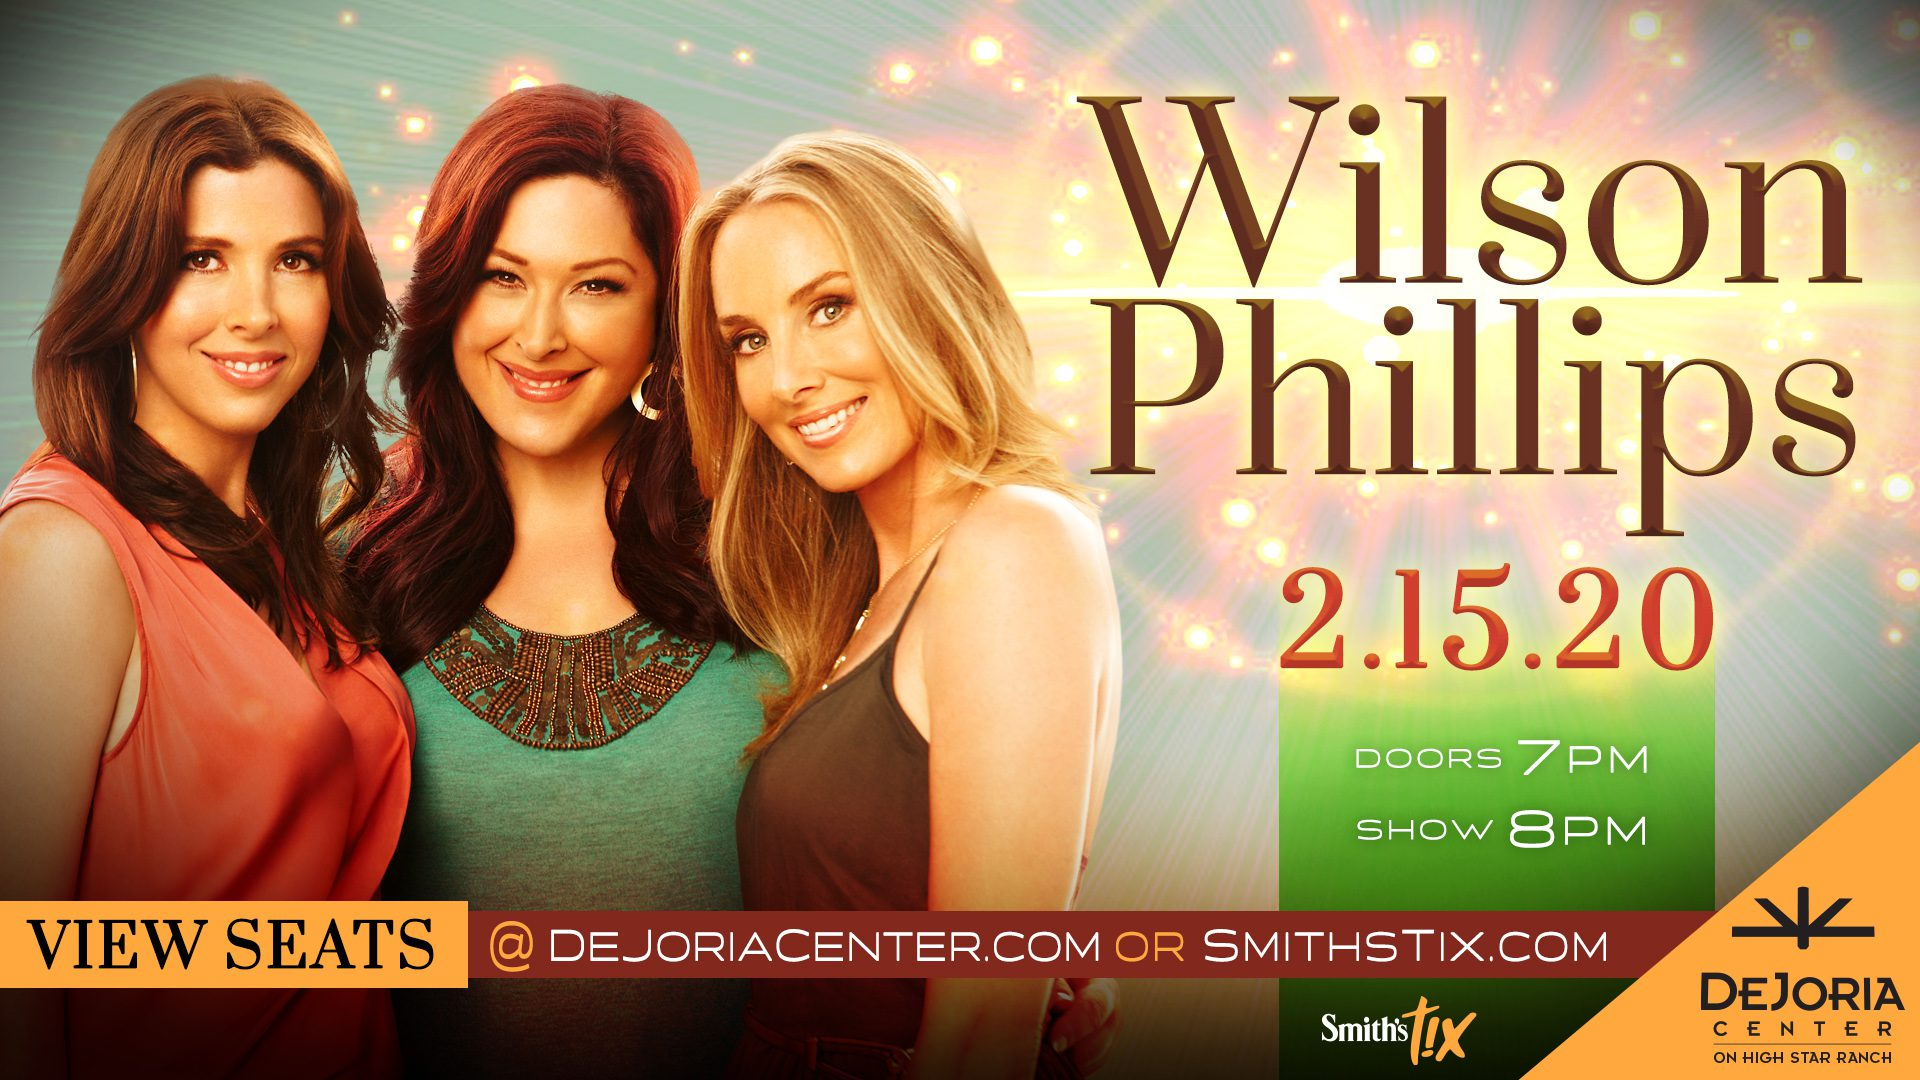 dejoria-center-Wilson-Phillips-concert